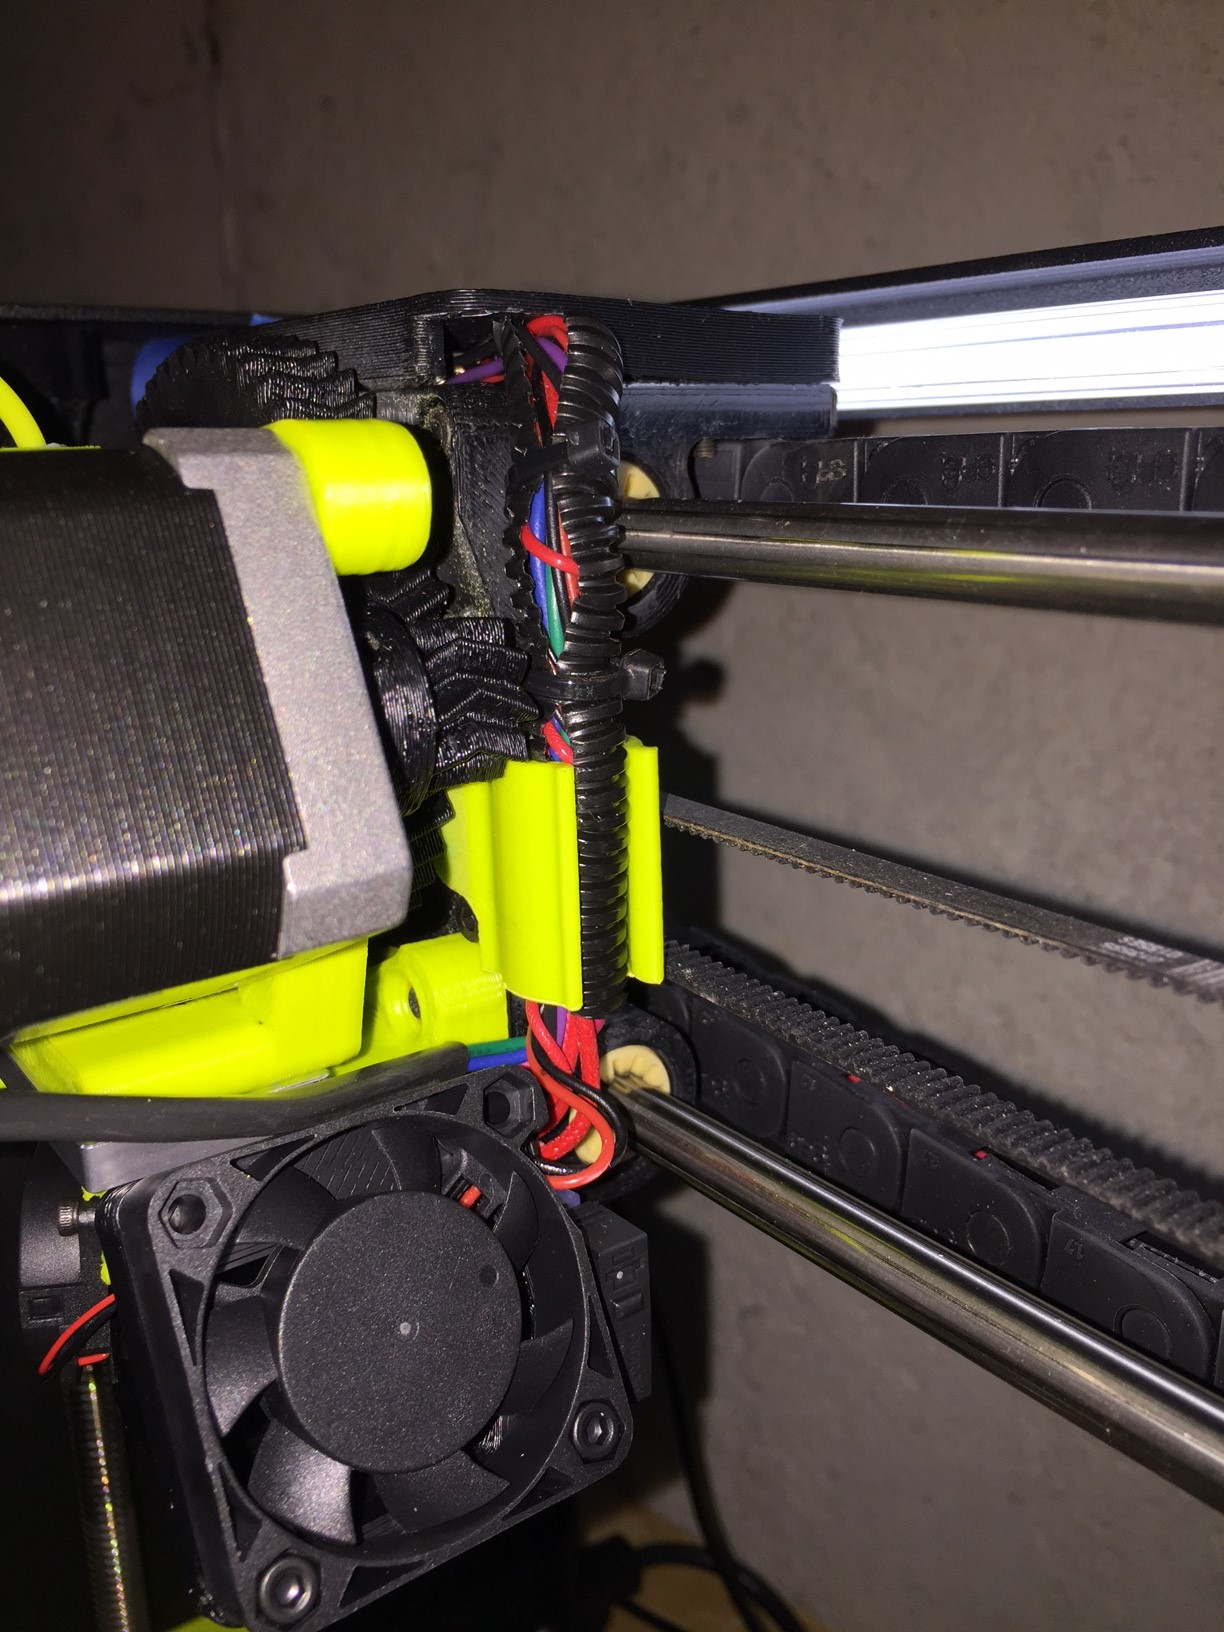 Tie Wire Harness Clips Trusted Wiring Diagram Loom Lulzbot Mini Printhead Clip By Jim2386 Thingiverse Routing